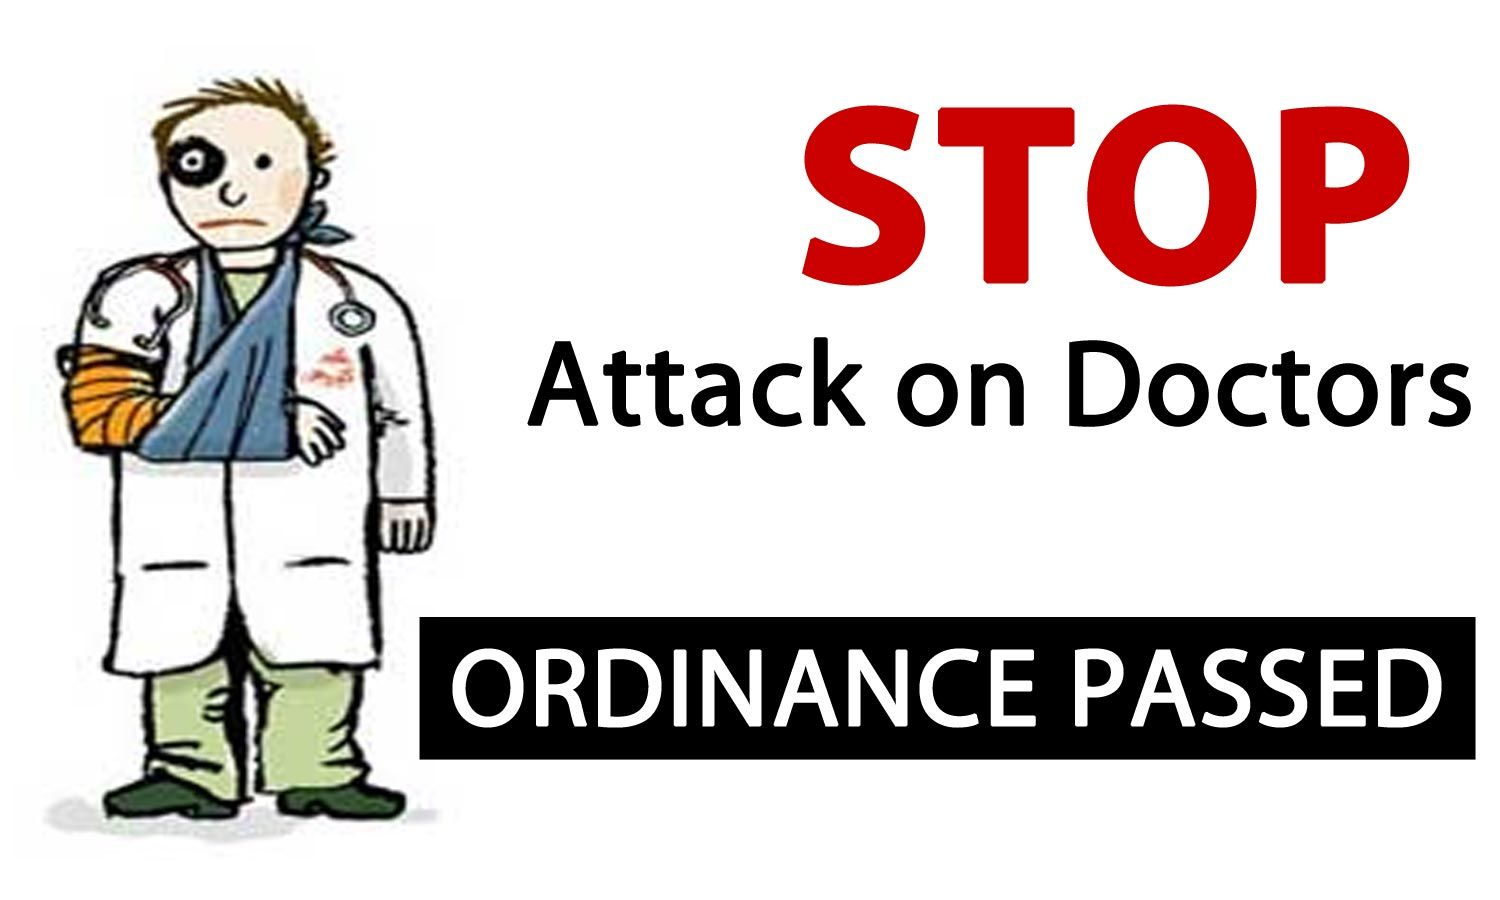 Govt clears Ordinance on Attack on Doctors, amends Epidemic Act to bring 7 years jail for assaulting medicos